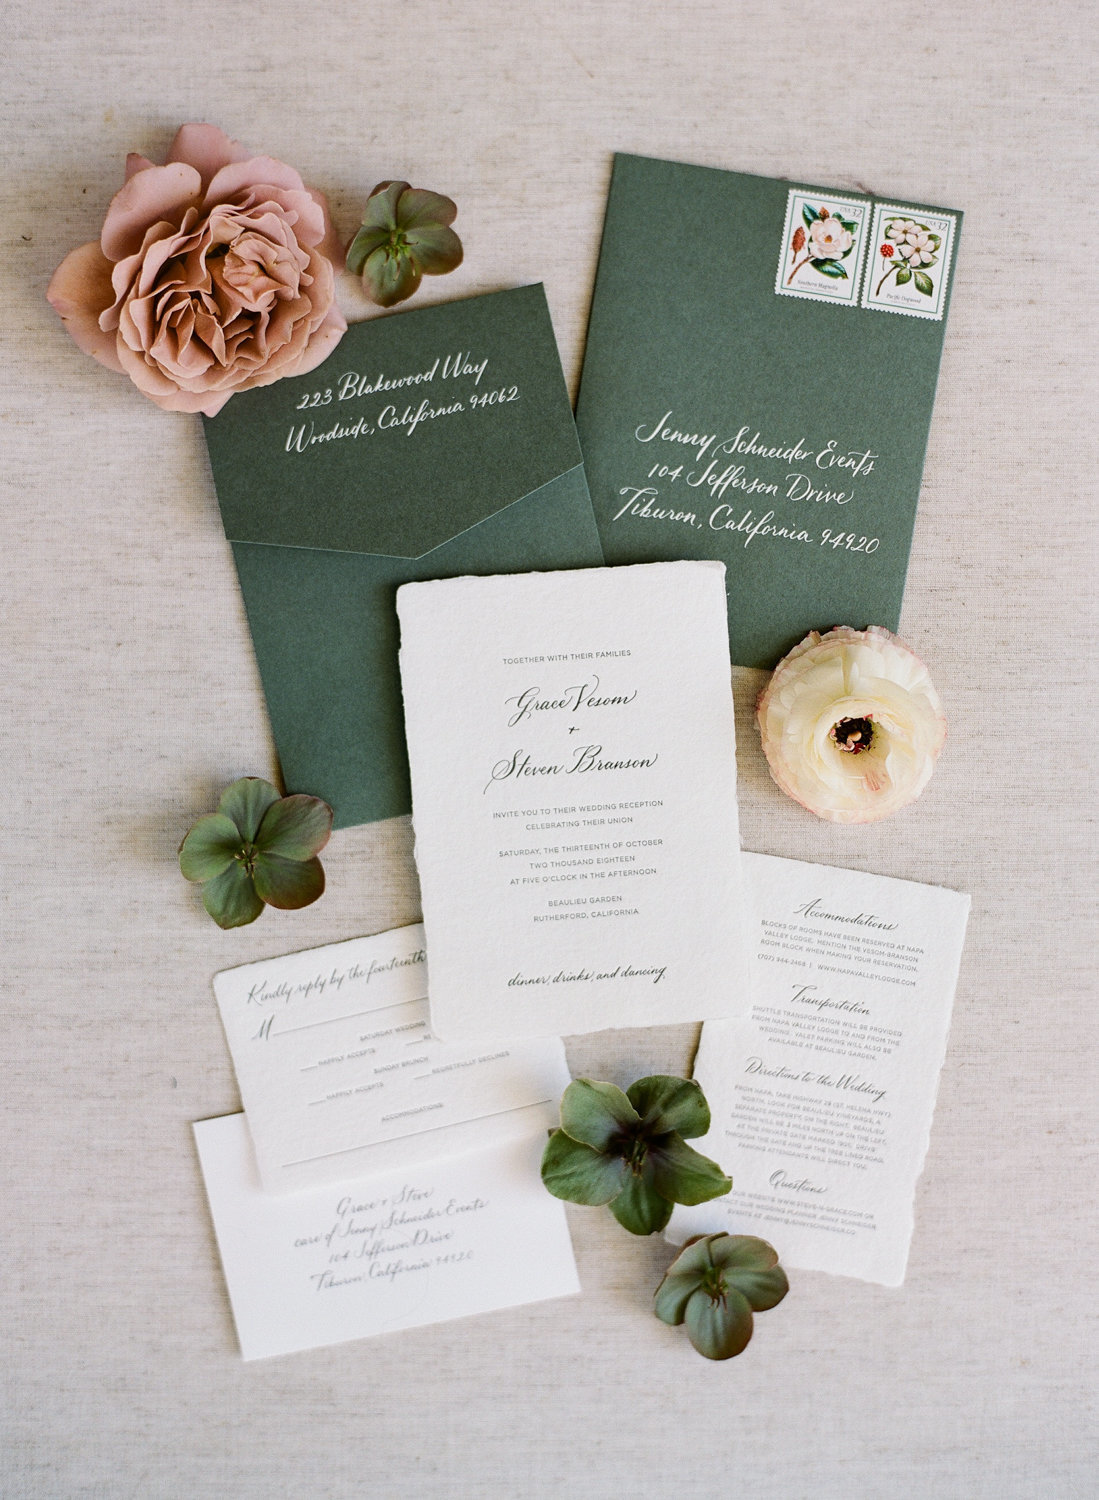 Invitation for wedding by Jenny Schneider Events at the Beaulieu Garden in Napa Valley, California. Photo by Lori Paladino Photography.